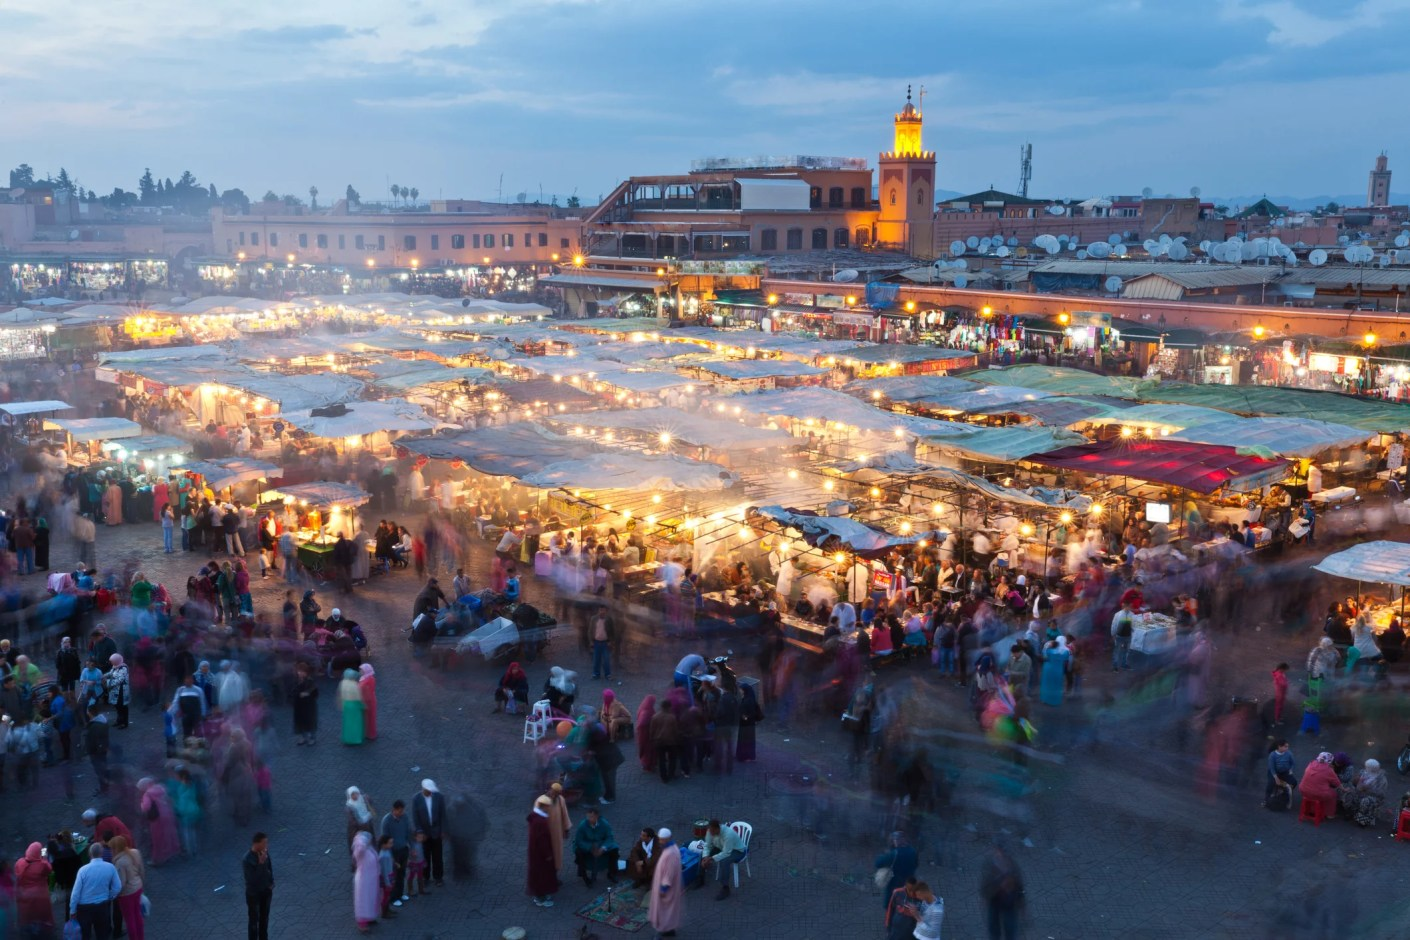 Avoiding henna in the Jemaa el-Fnaa Square will save your sensitive skin. Image courtesy of Dave G Kelly via Getty Images.